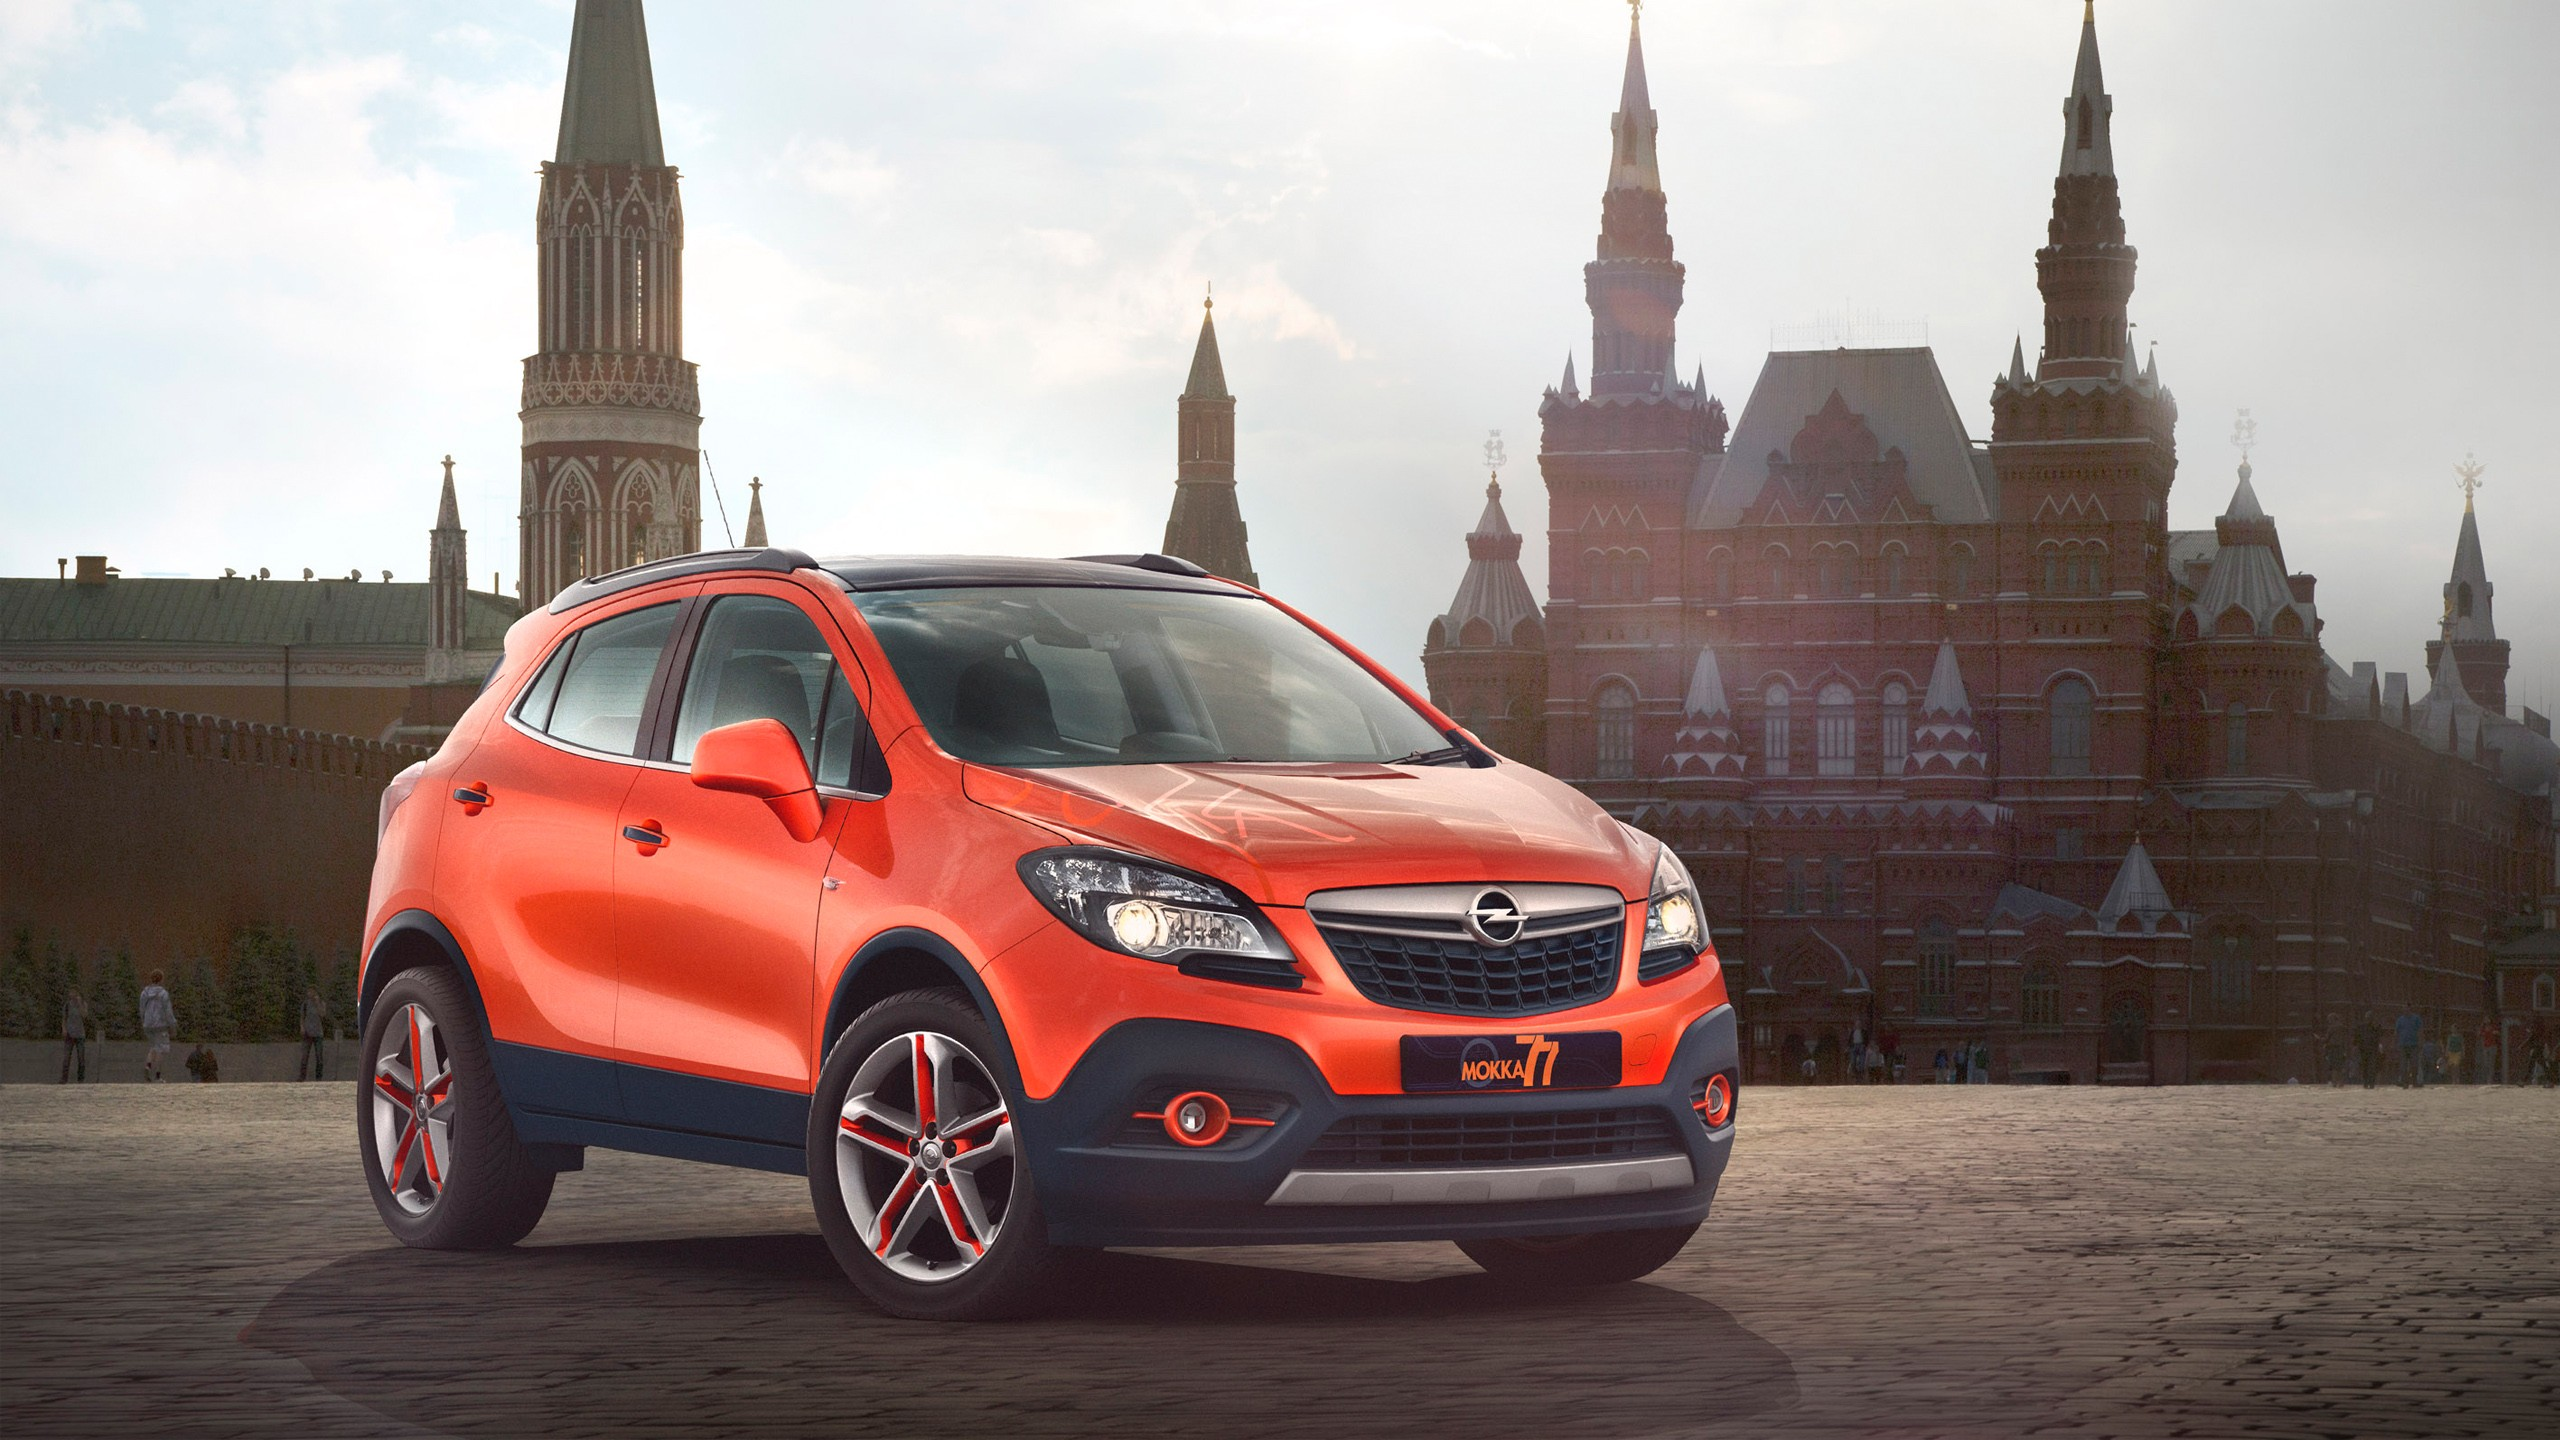 2015 opel mokka moscow edition wallpaper hd car. Black Bedroom Furniture Sets. Home Design Ideas